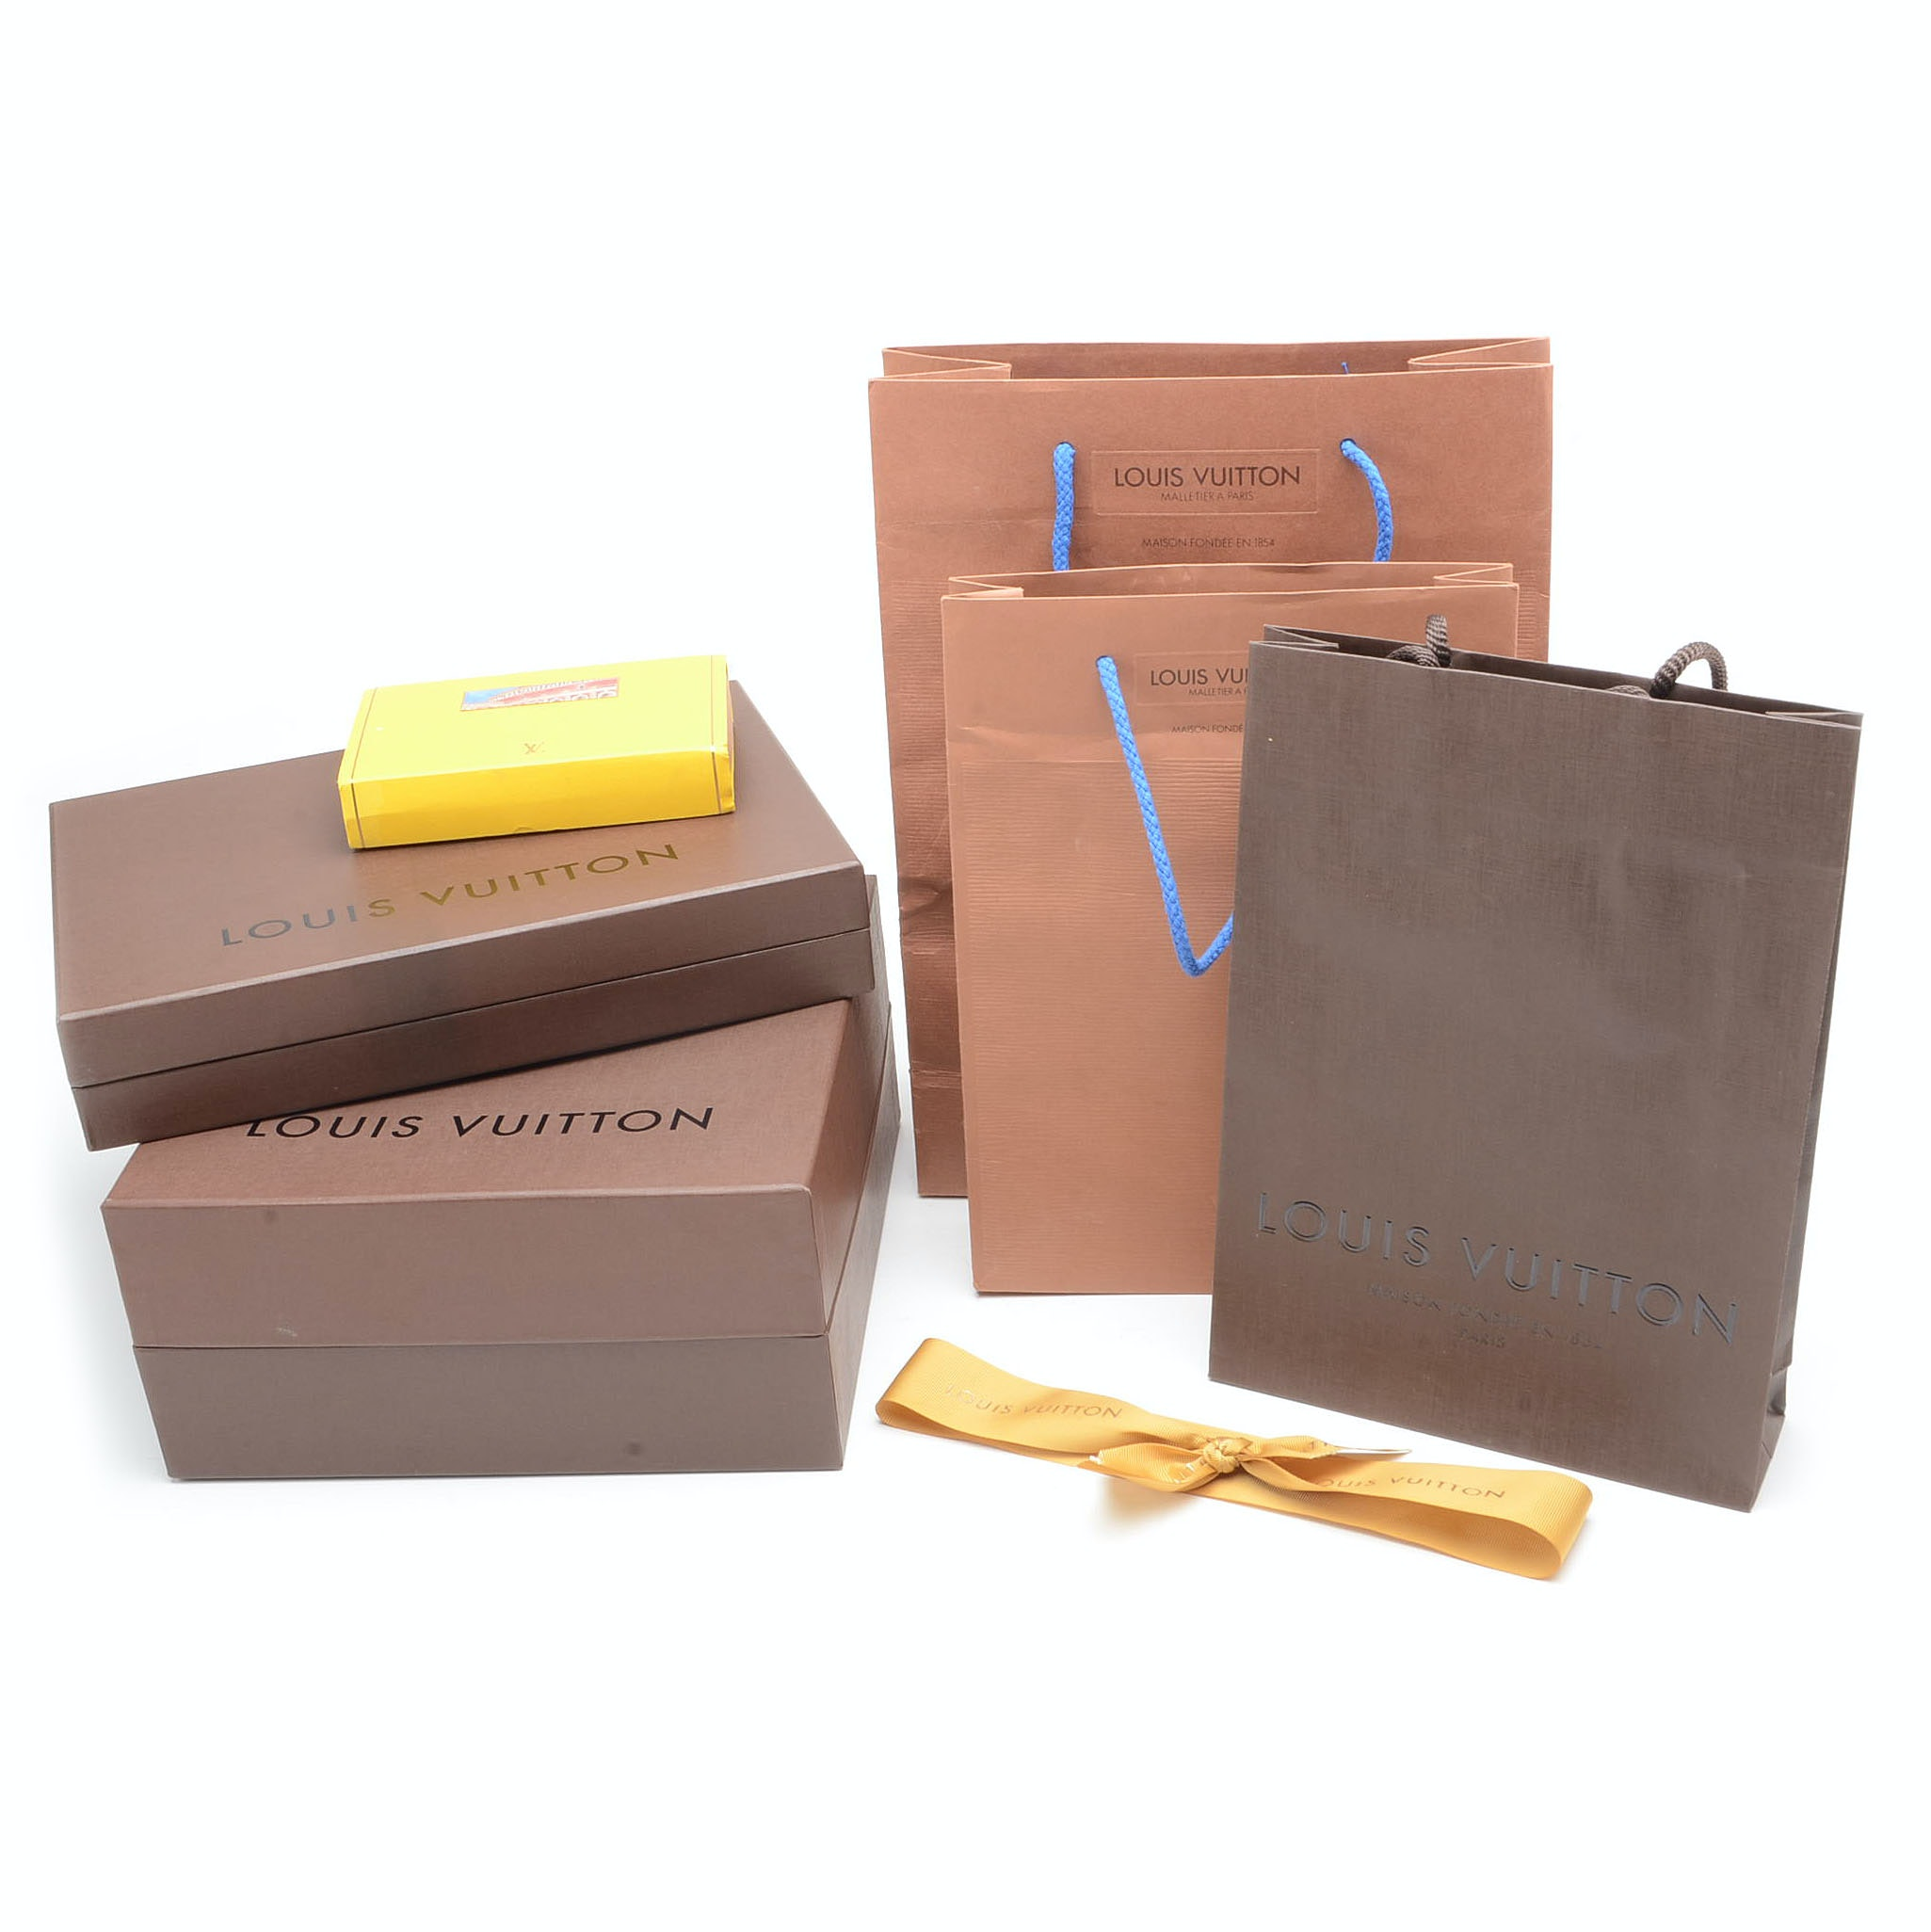 Louis Vuitton Boxes and Bags